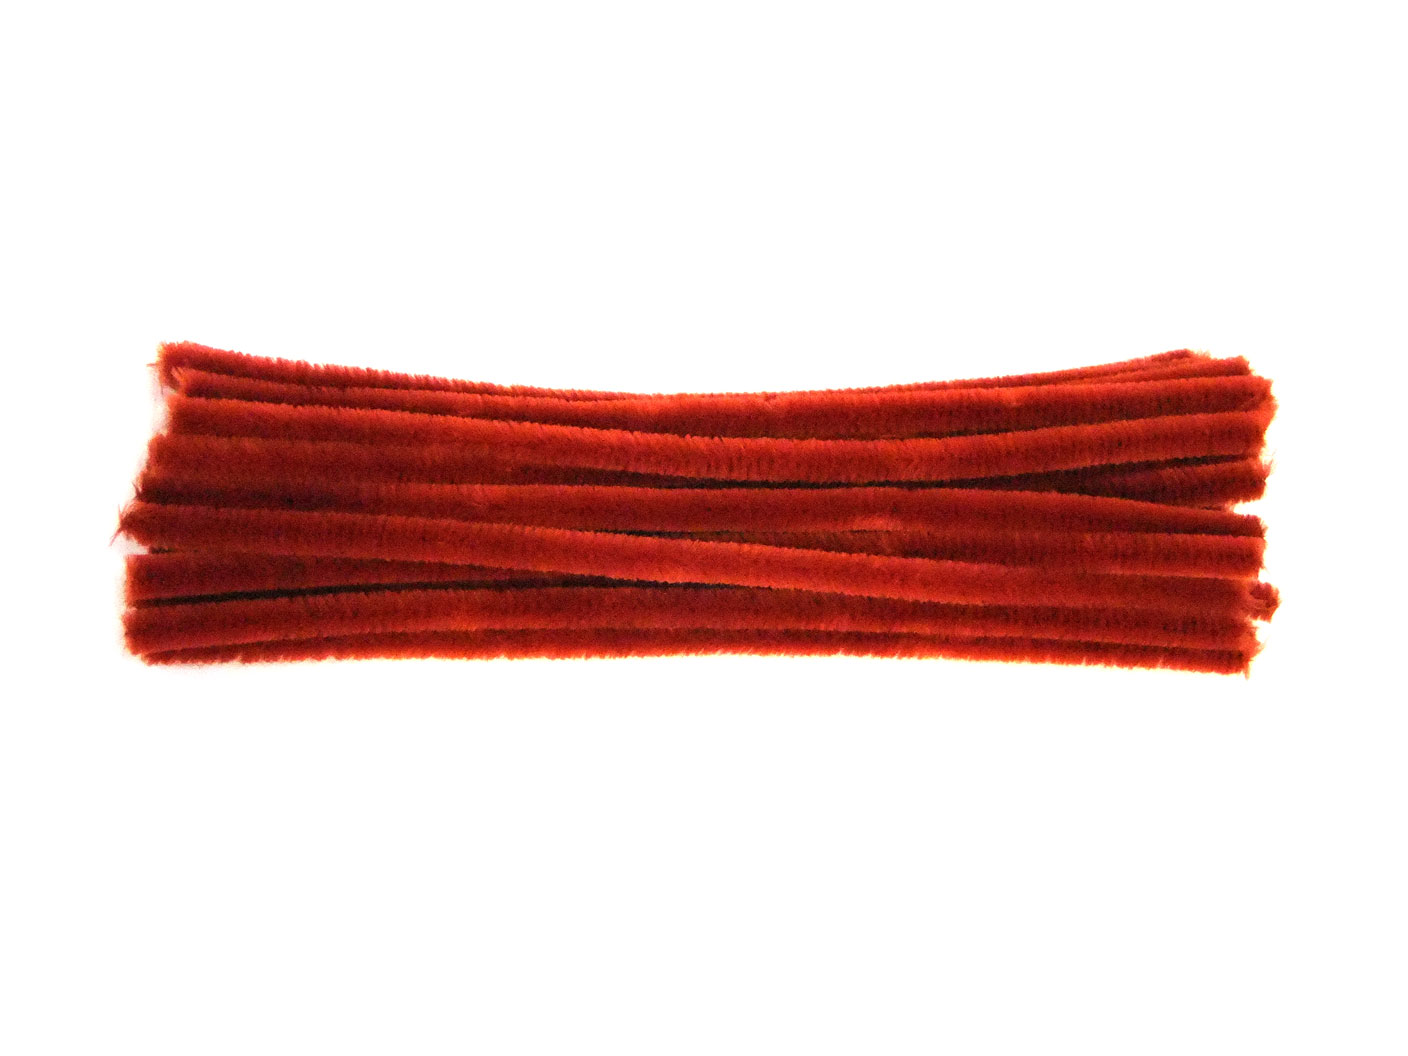 9mm or 12mmUK Made 6mm Luxury Orange Chenille Pipe Cleaners4mm